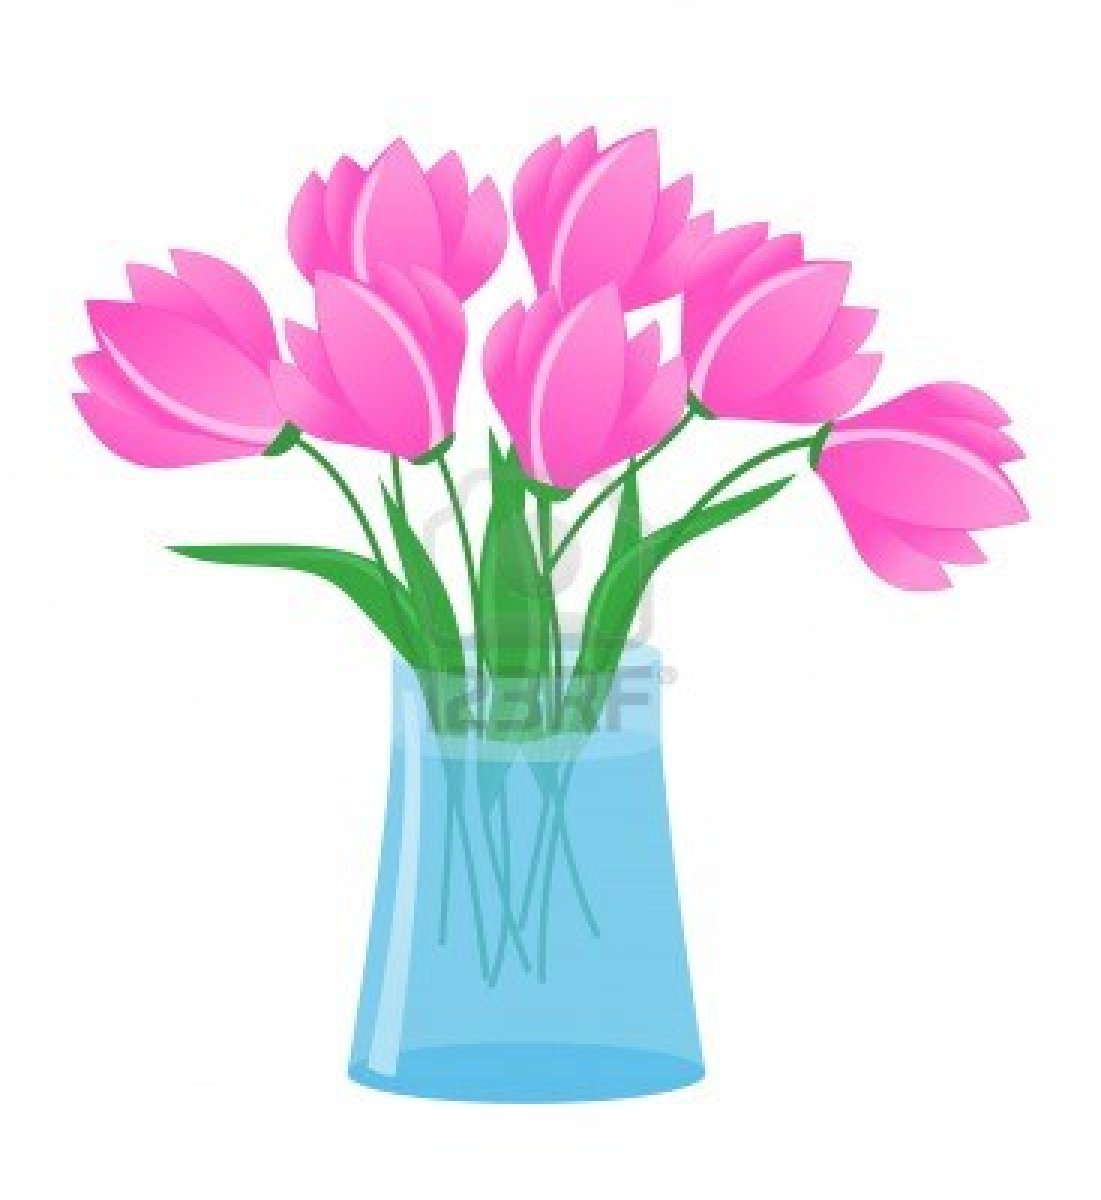 Flowers In A Vase Clipart Flowers in vase stock vectorVase Of Flowers Clip Art